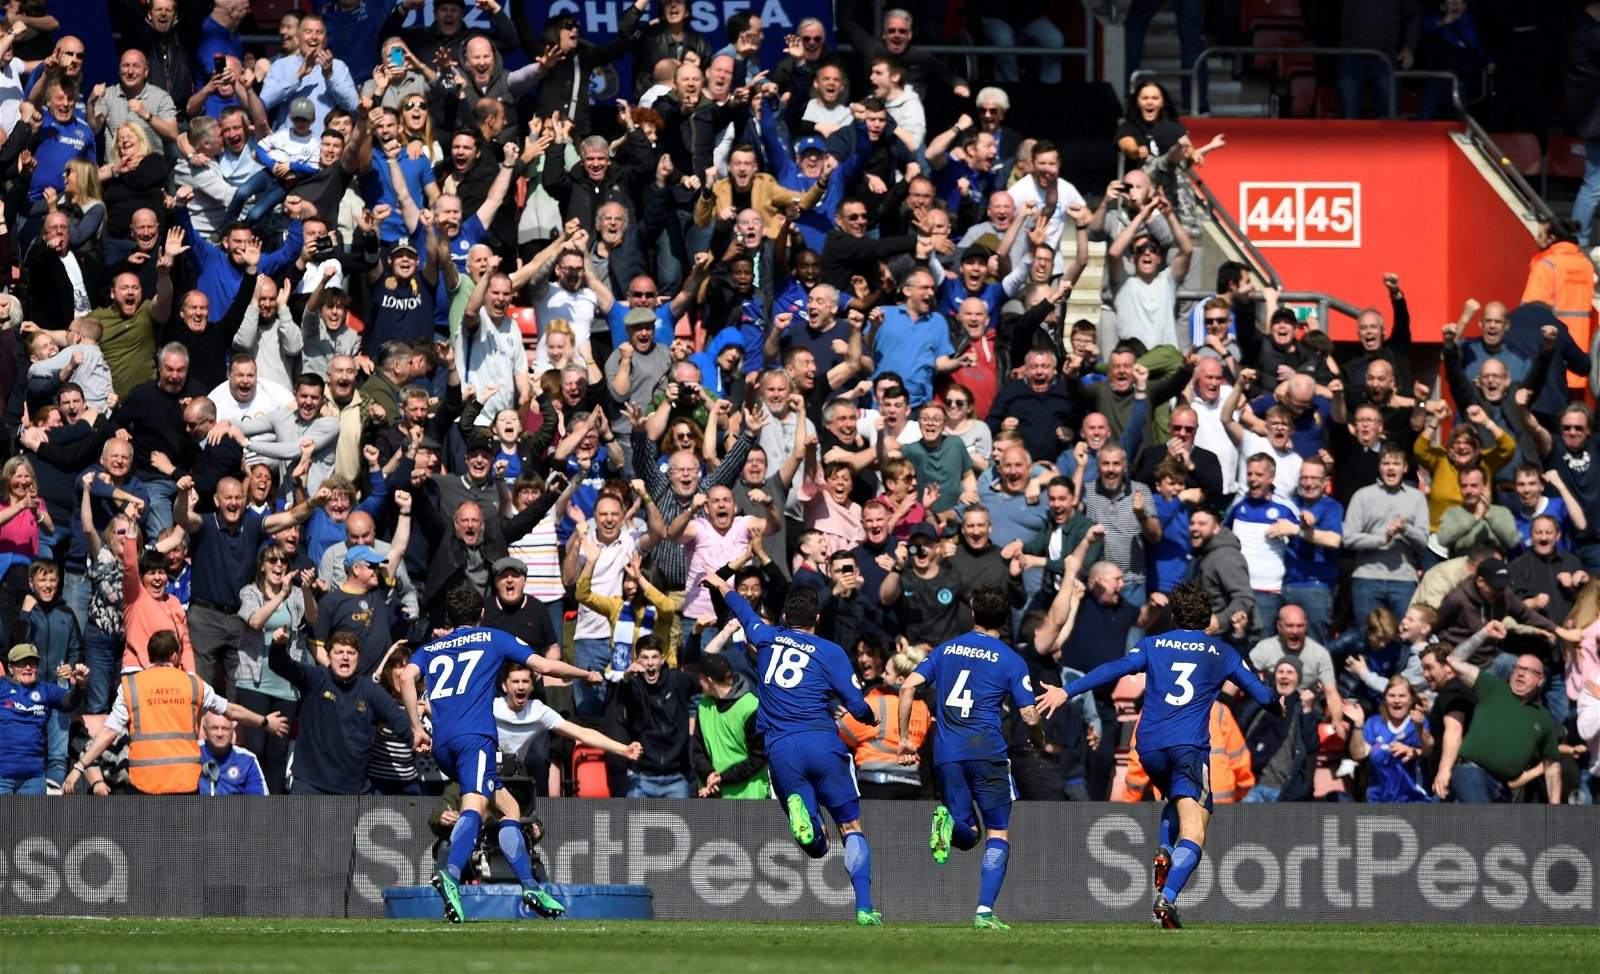 Chelsea fans celebrate against Southampton